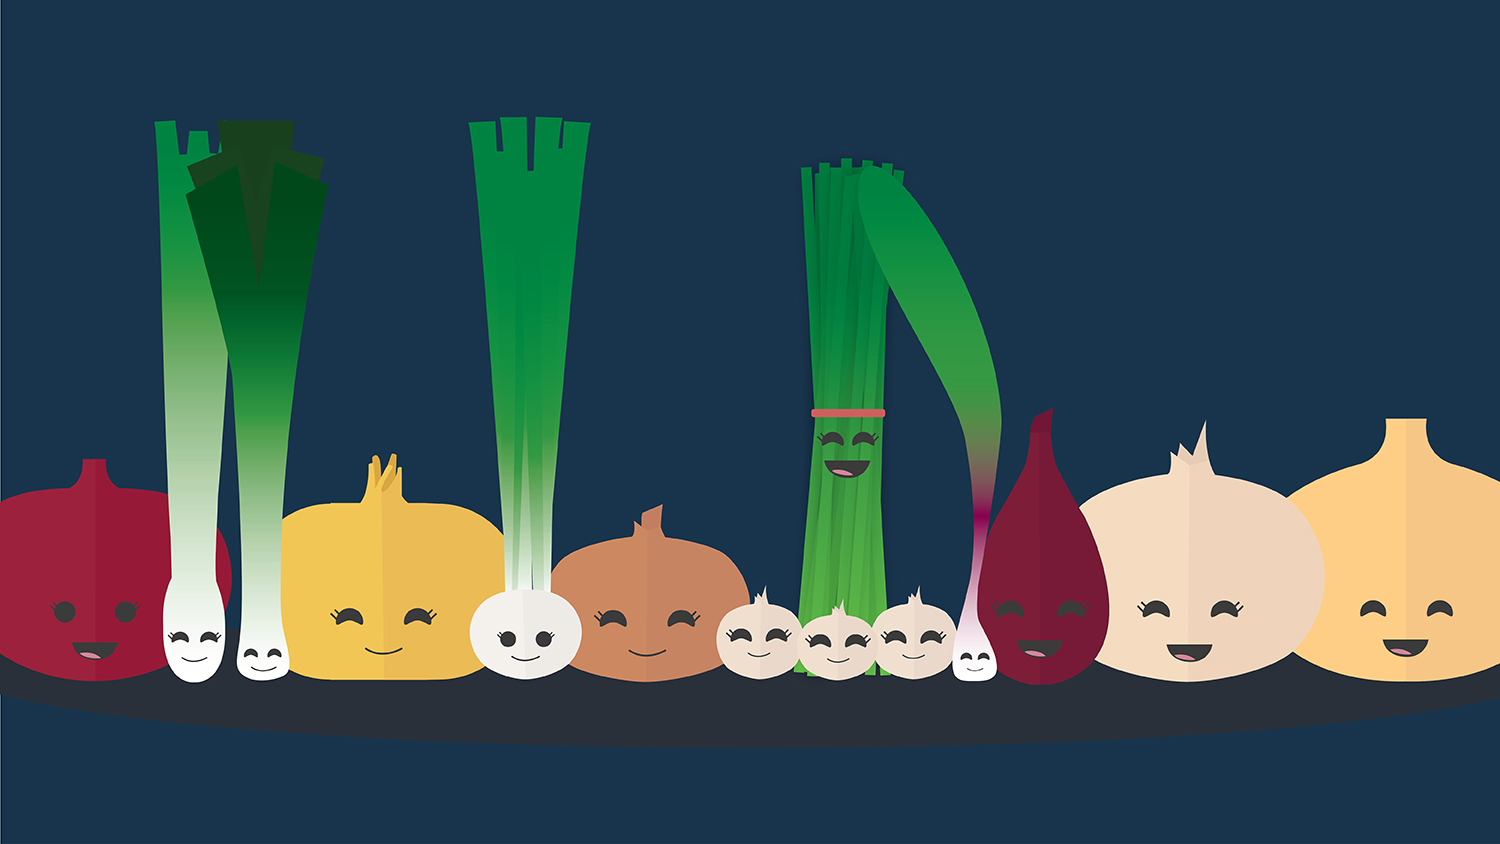 onions and their cousins